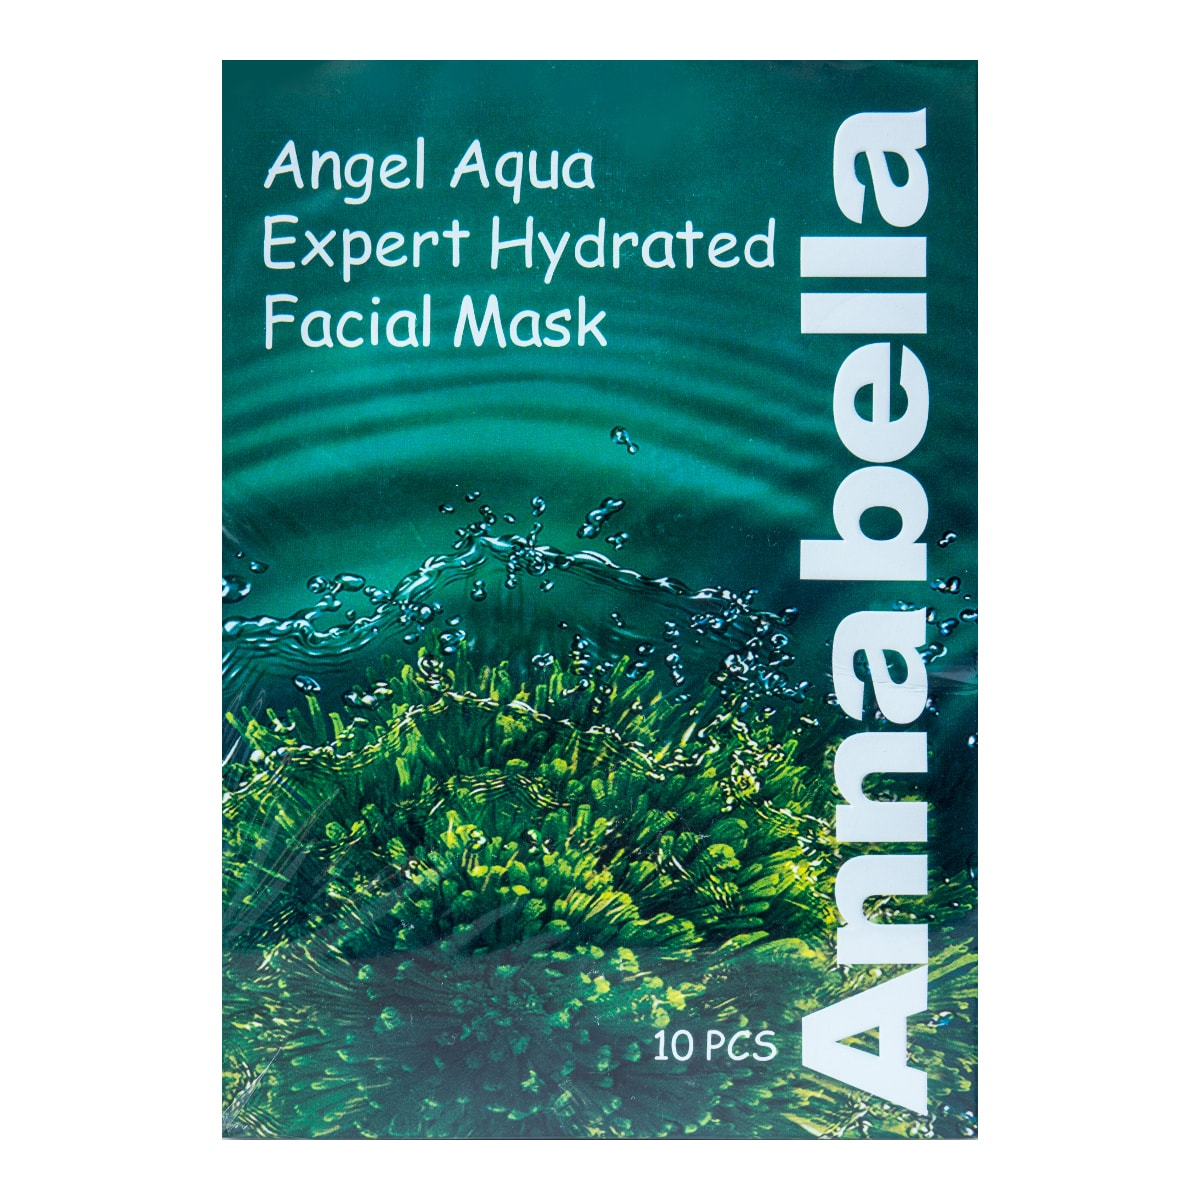 Annabella Angel Aqua Hydrated Facial Mask 10sheets